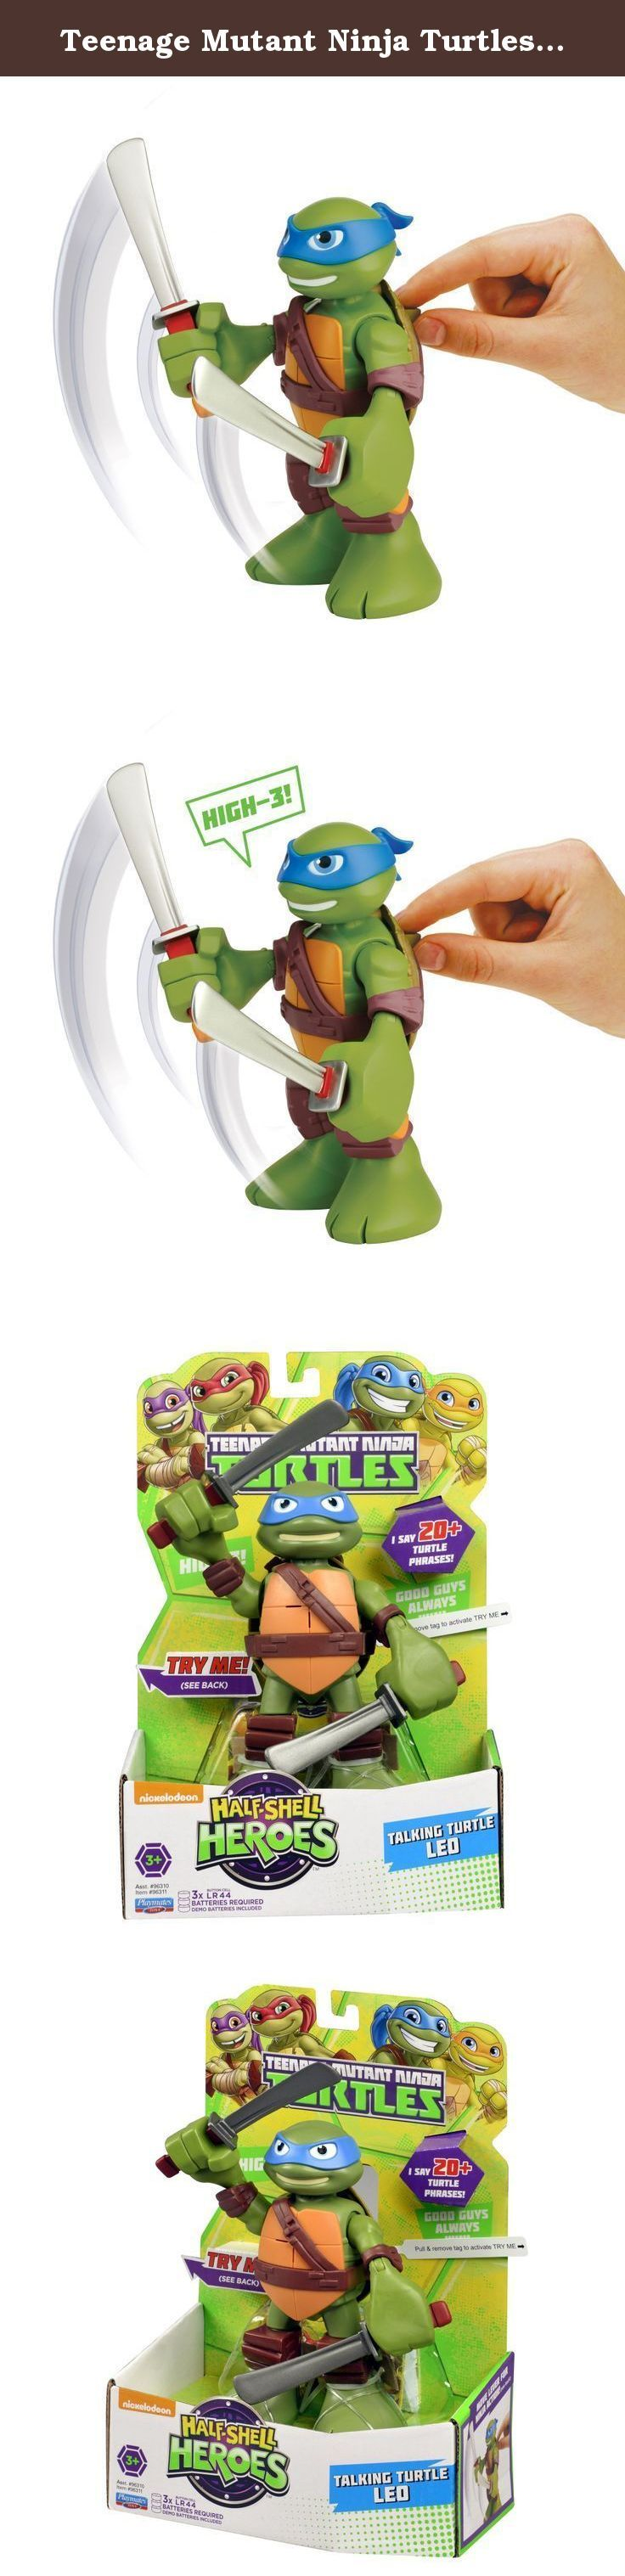 Teenage Mutant Ninja Turtles Pre-Cool Half Shell Heroes 6 Inch Leonardo Talking Turtles Figure. Coming out of their shells for the very first time, the Half-Shell Heroes are ready for non-stop ninja adventure! You can join the fun-loving brothers in their pizza-fueled missions as they team up to mess with menacing mutants and stop the Shredder.